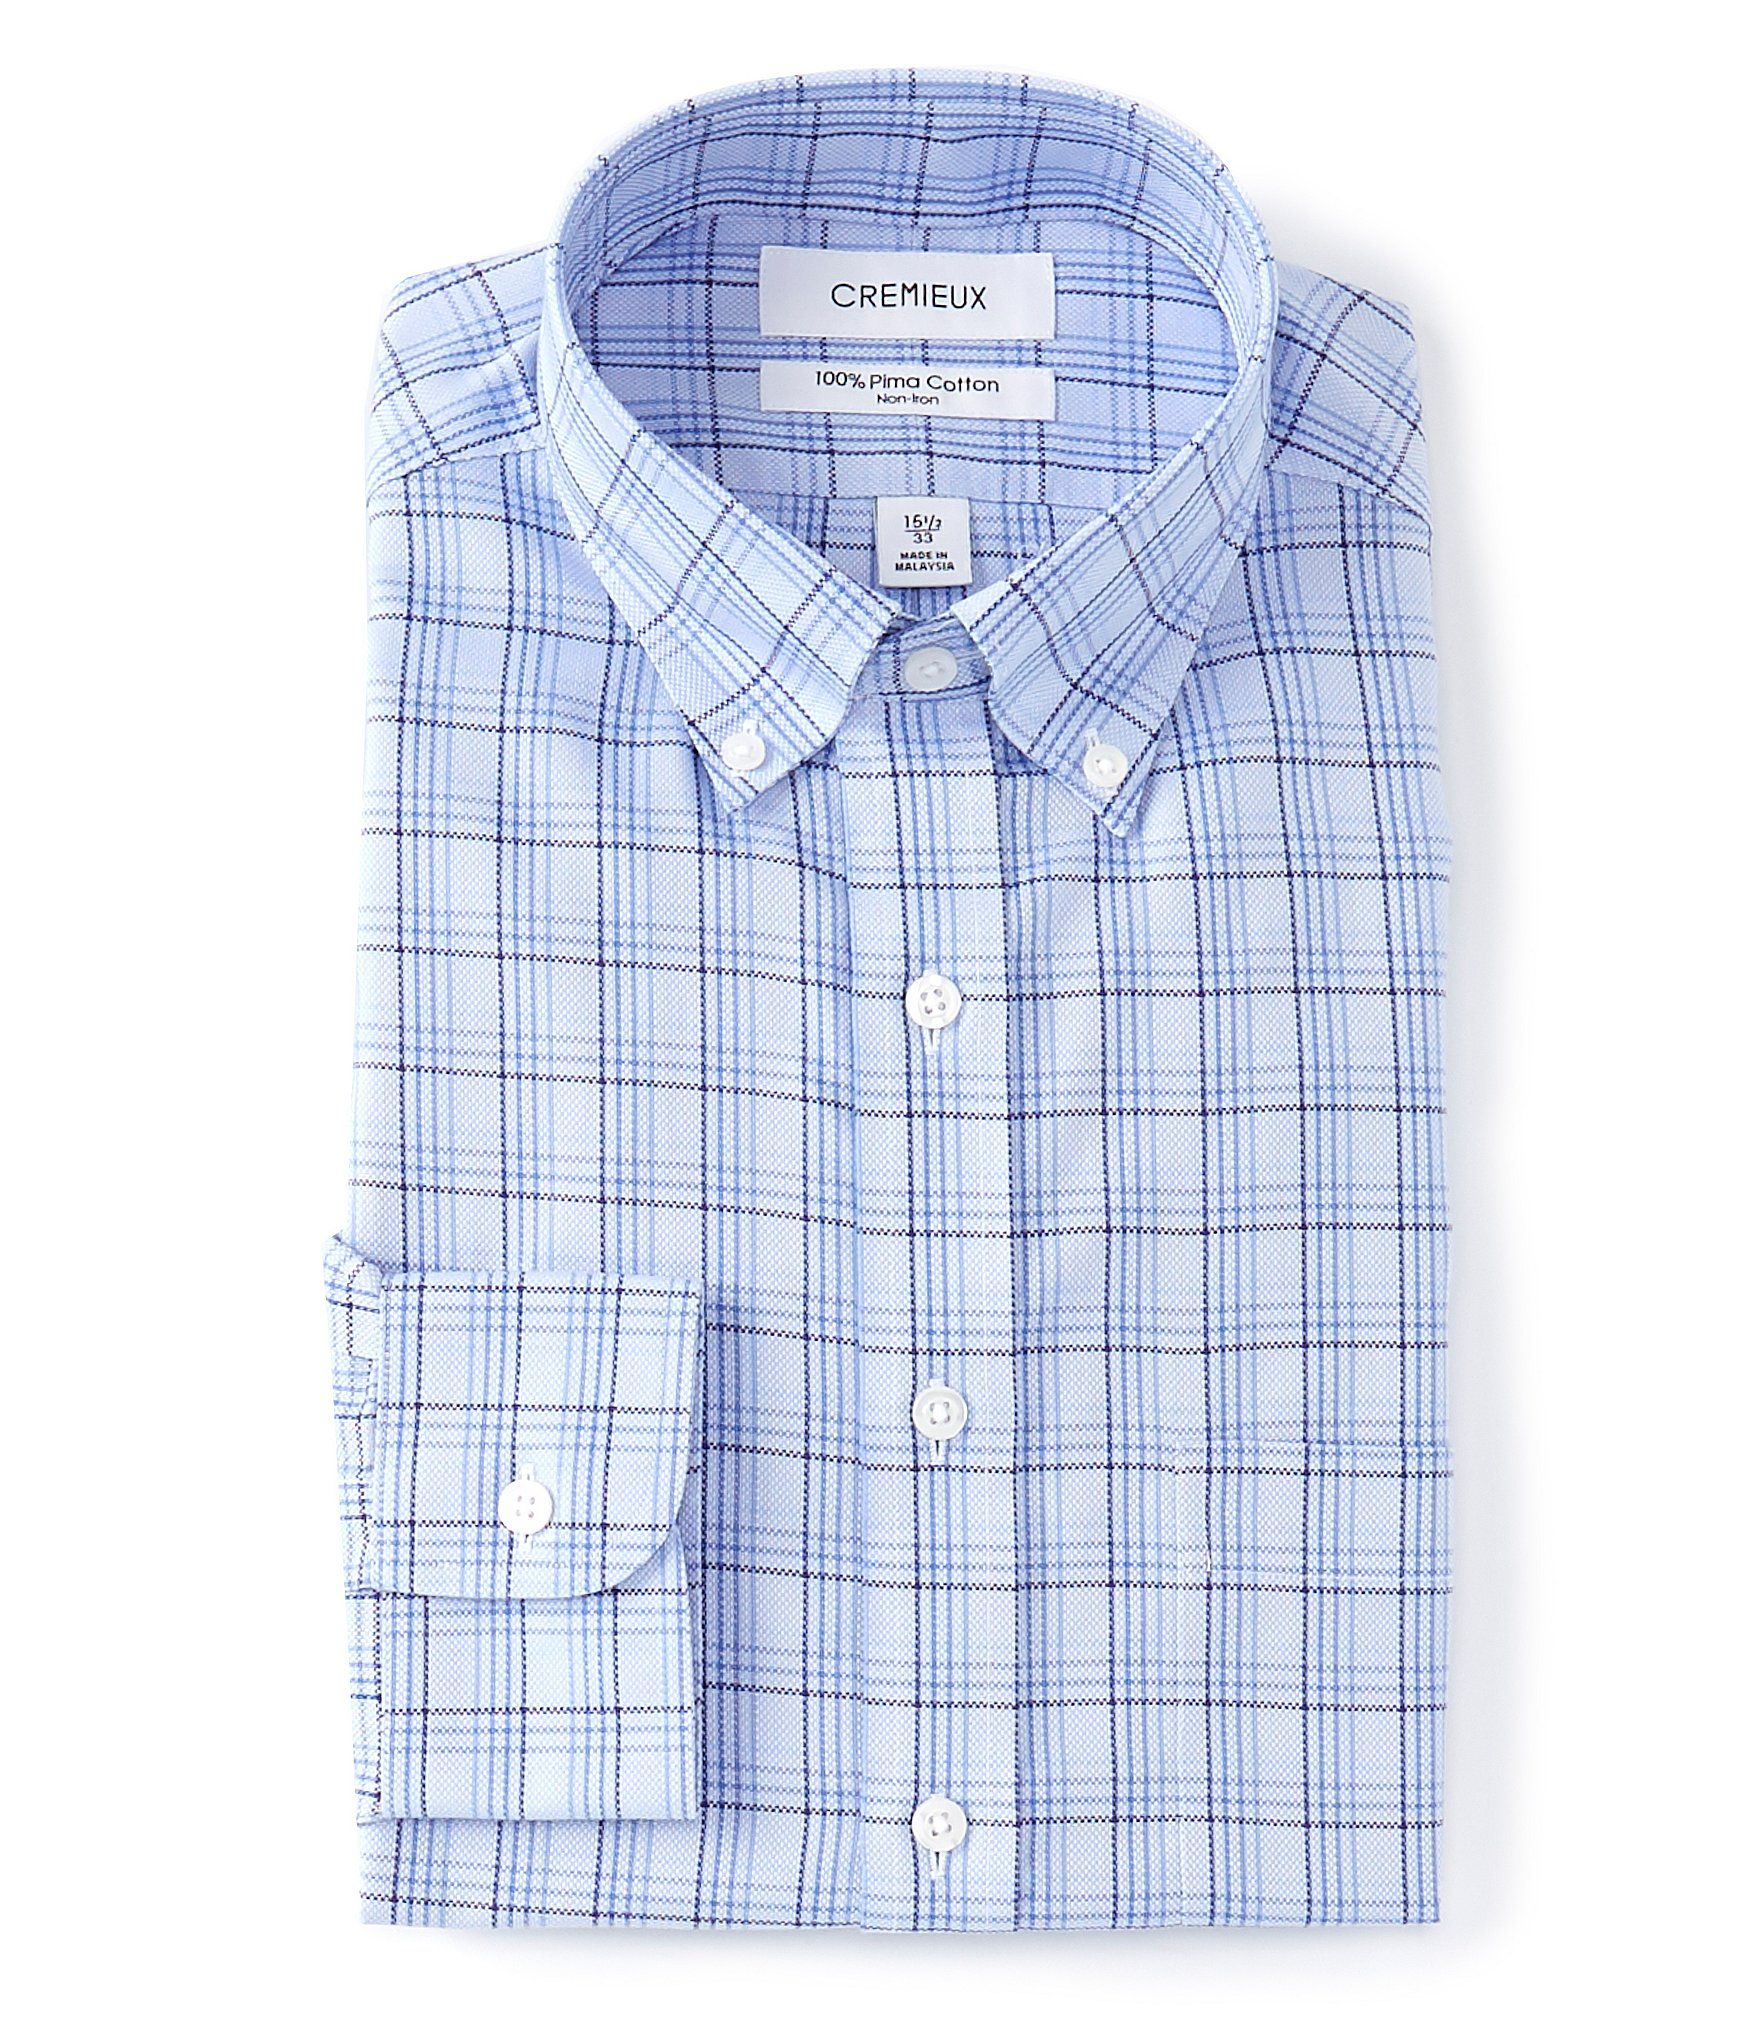 From Cremieux, this dress shirt features:Checked patternbuttondown collarLong sleeves with single-button barrel cuffsbutton-front closureSingle patch pocketBack yoke with box pleat taped shoulder and side seamsCurved hemclassic-fitPima cottonMachine washImported.